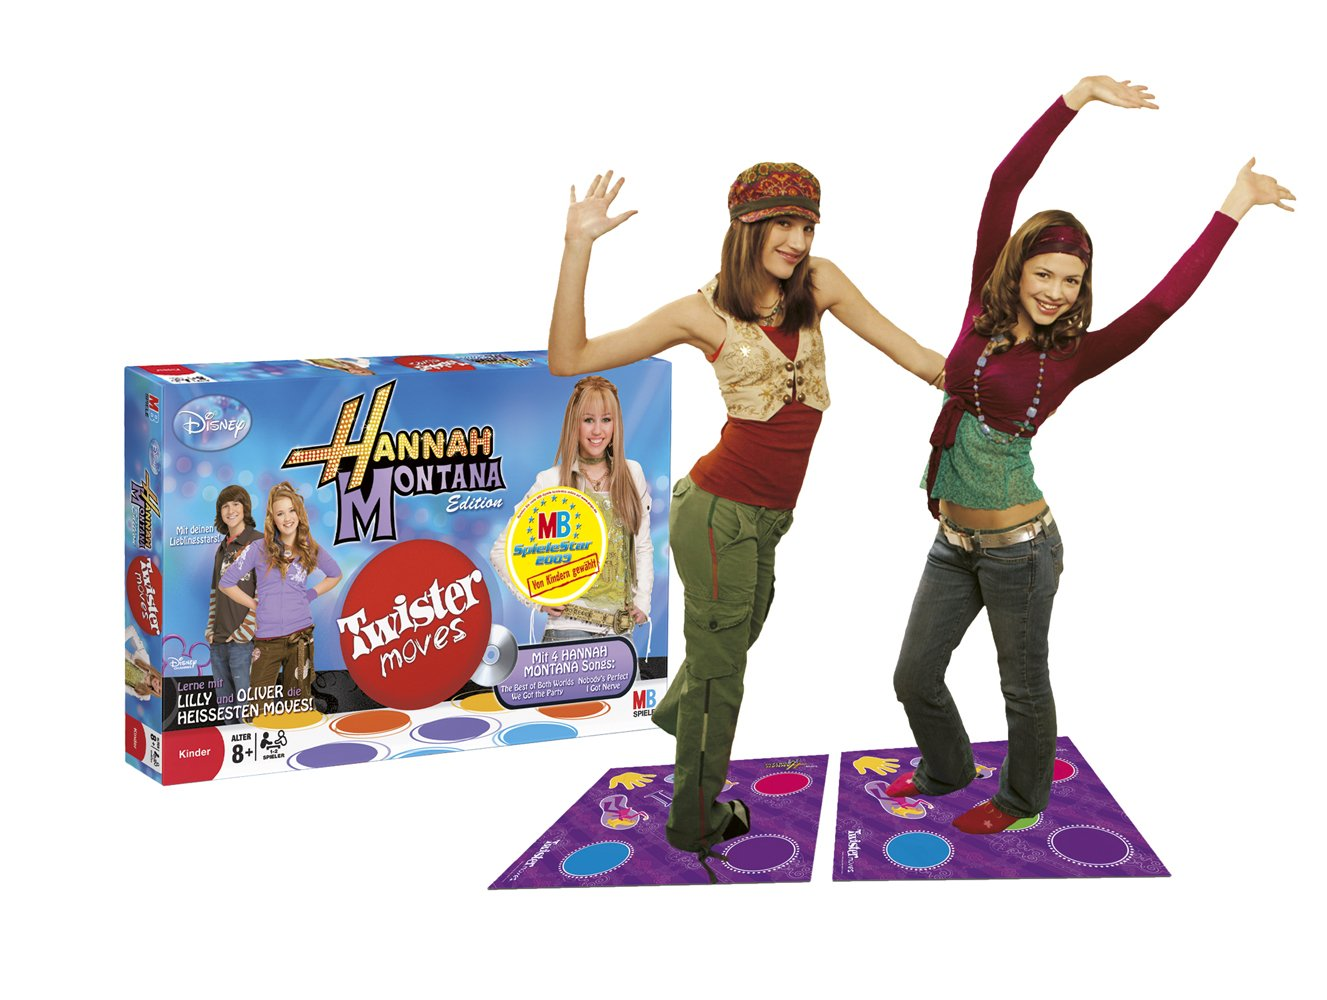 Hasbro-46808100-MB-Twister-Moves-Hannah-Montana-inkl-2-CDs